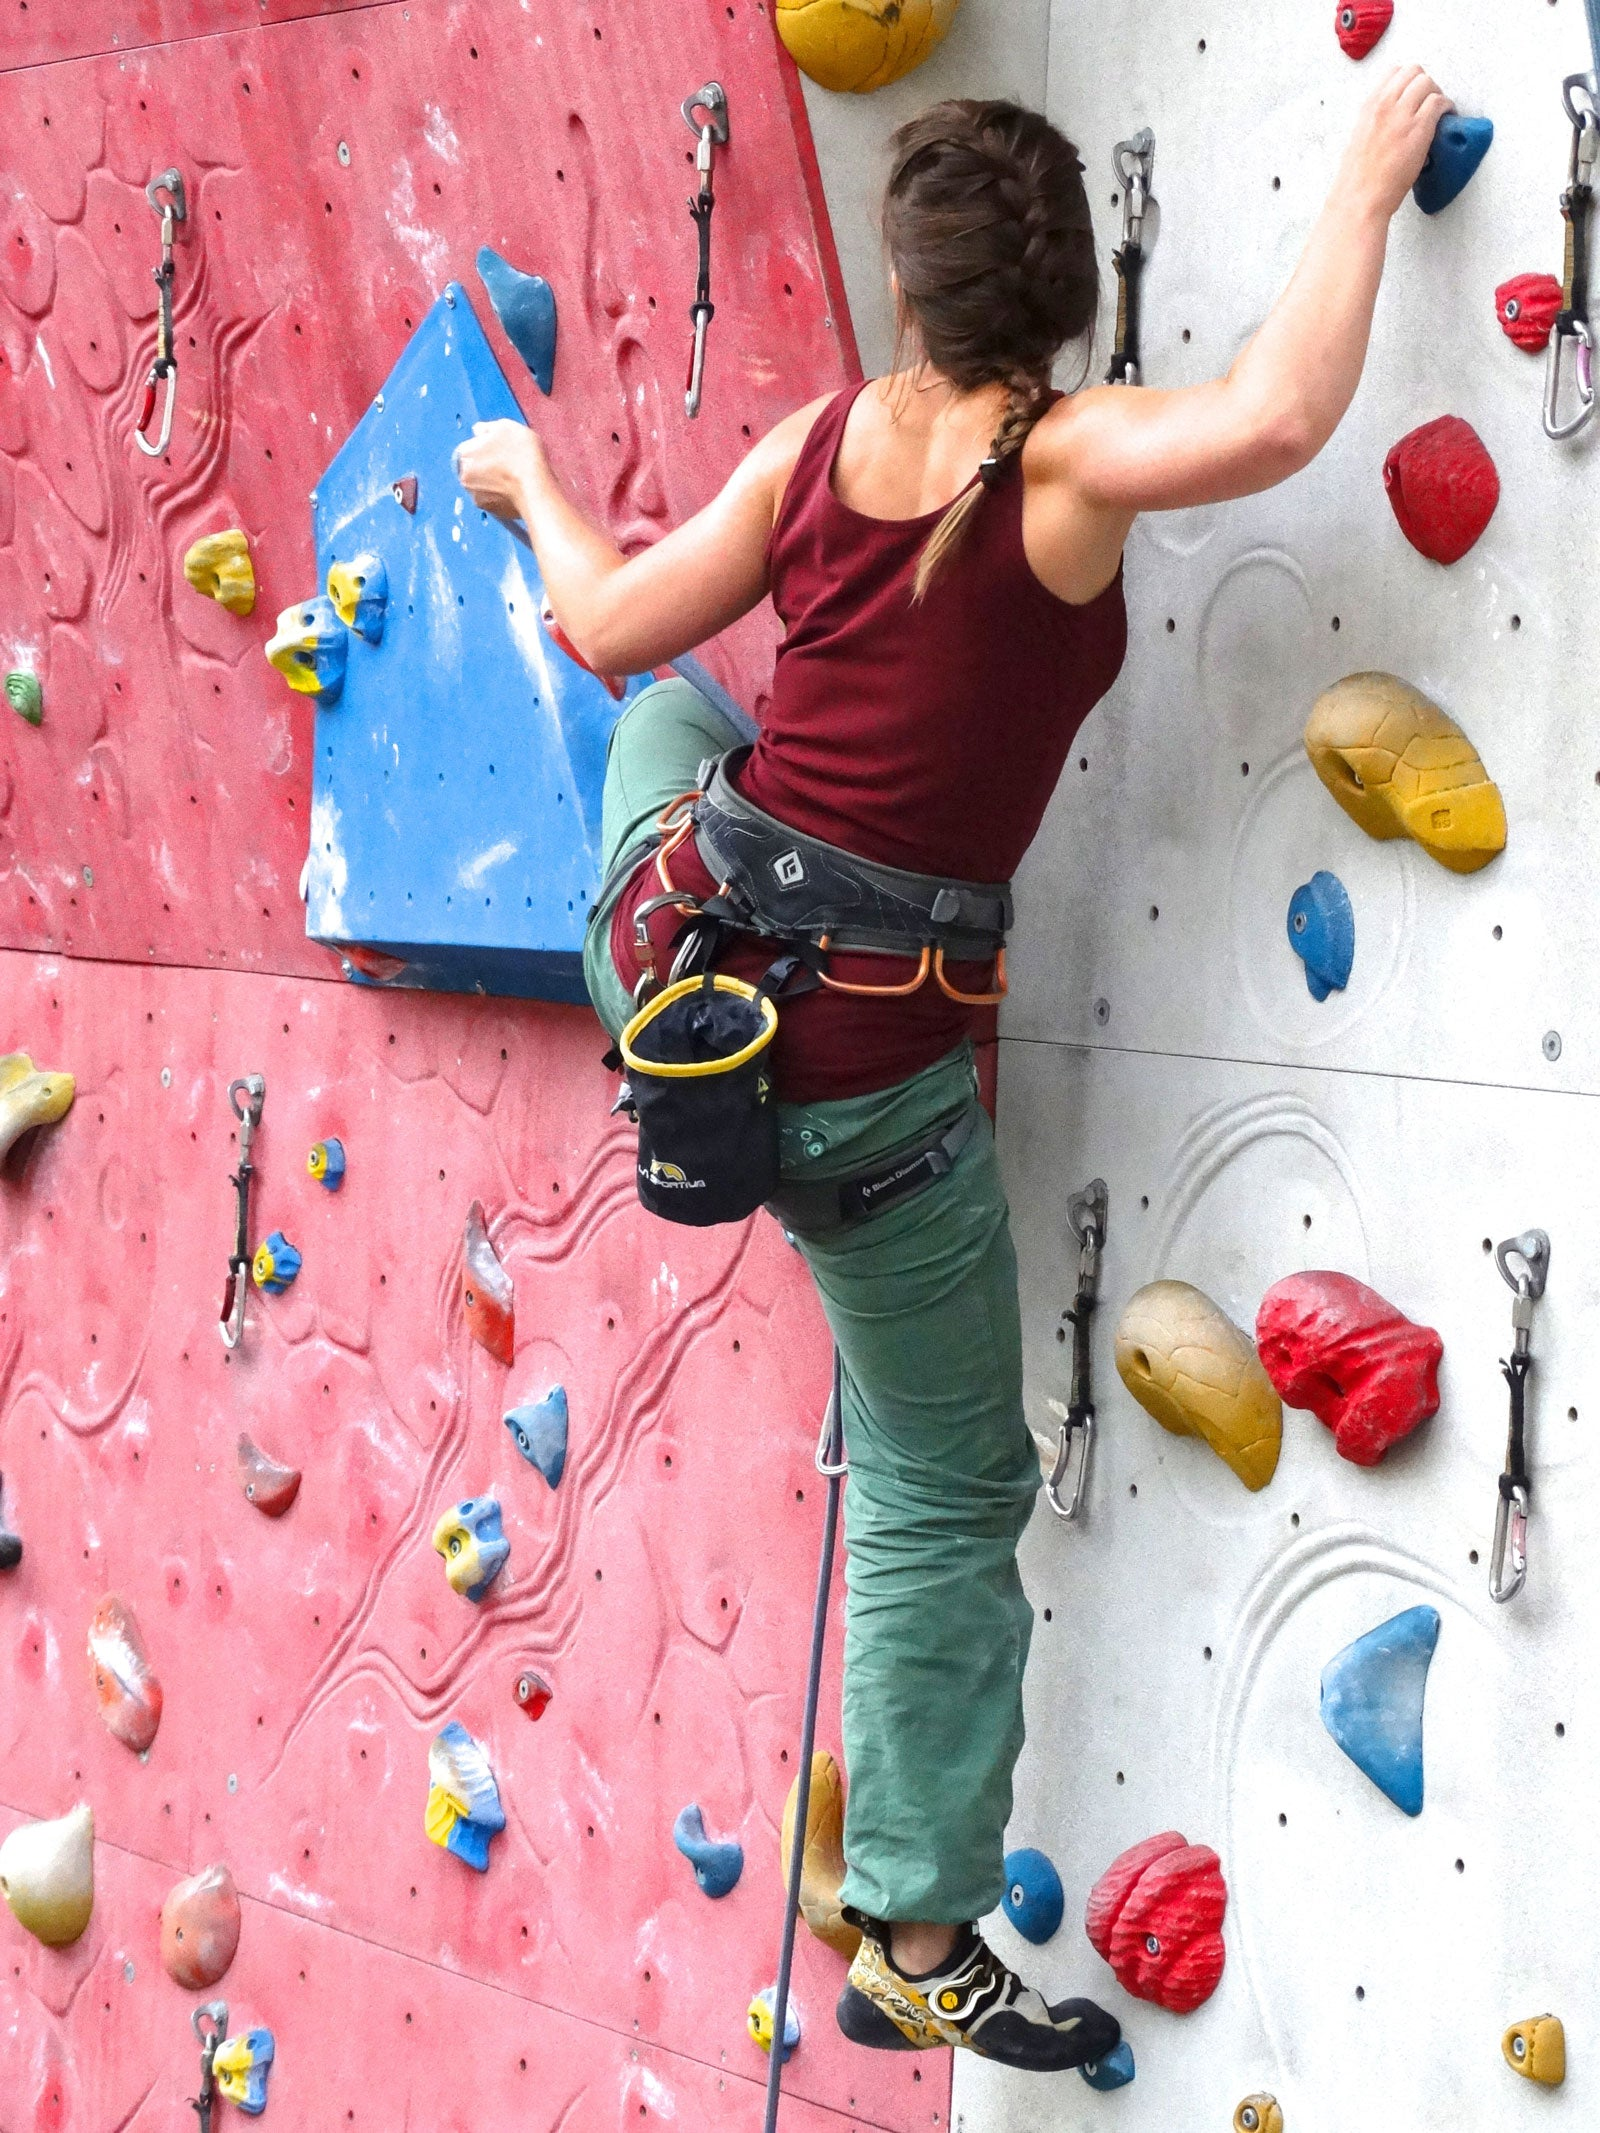 5 Reasons You'll Love Joining an Indoor Climbing Gym | CloudLine Apparel